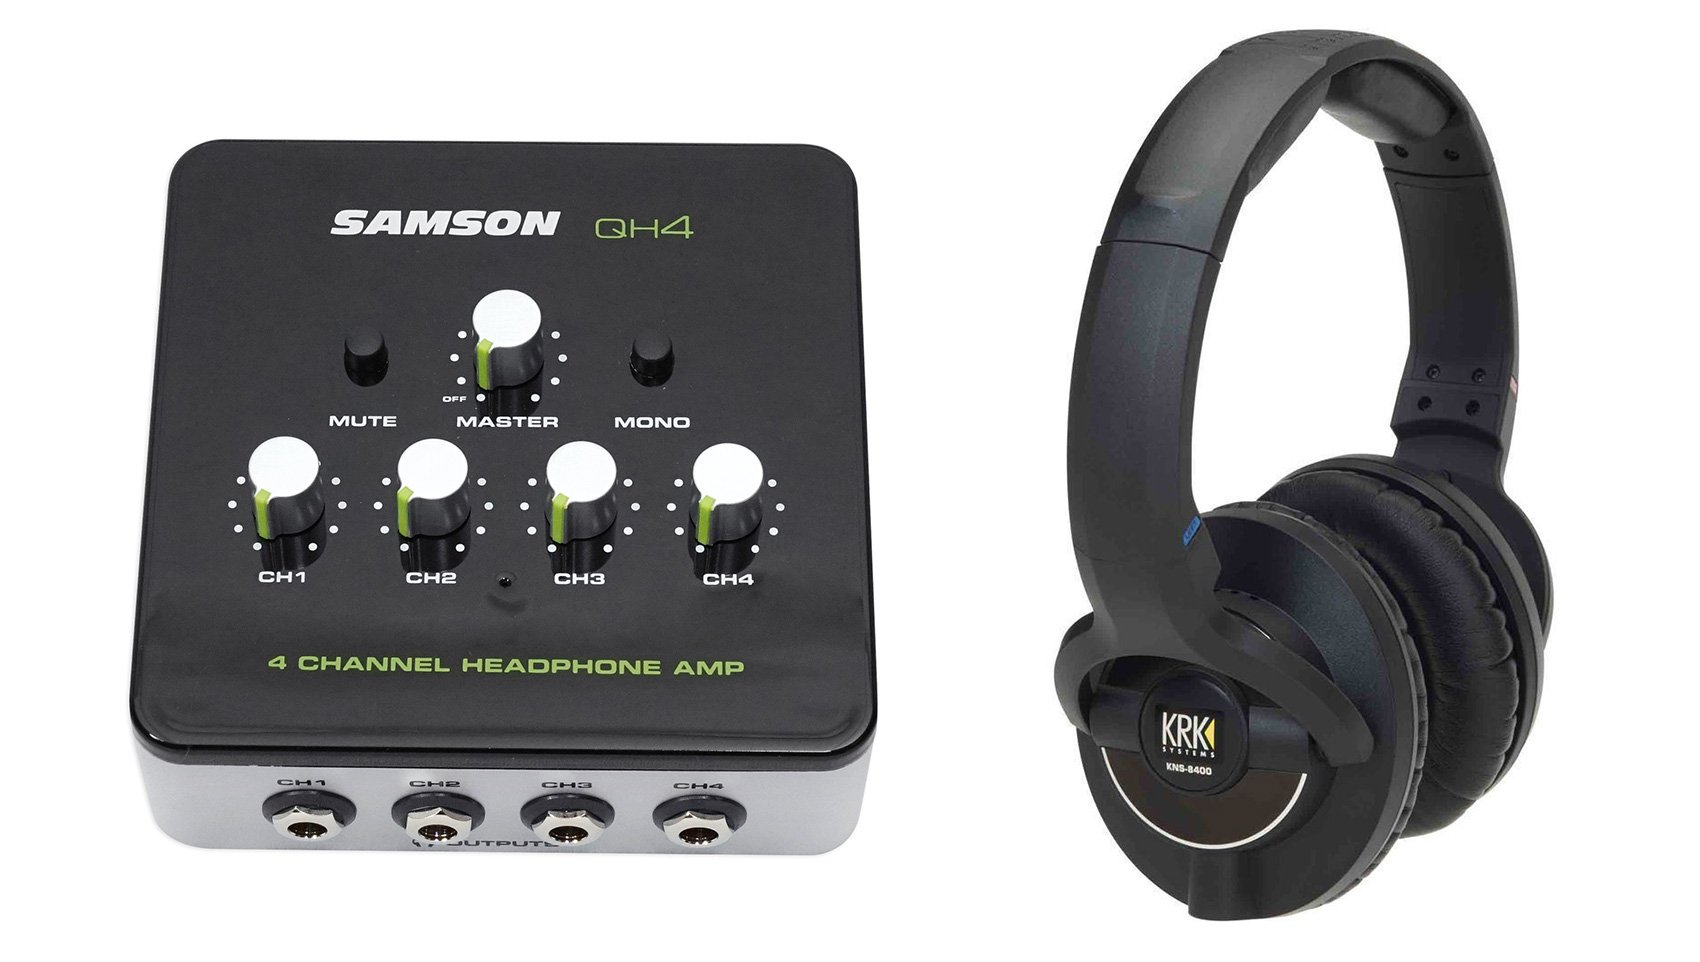 KRK KNS-8400 Professional Dynamic Studio Monitor Headphones+Samson Amplifier